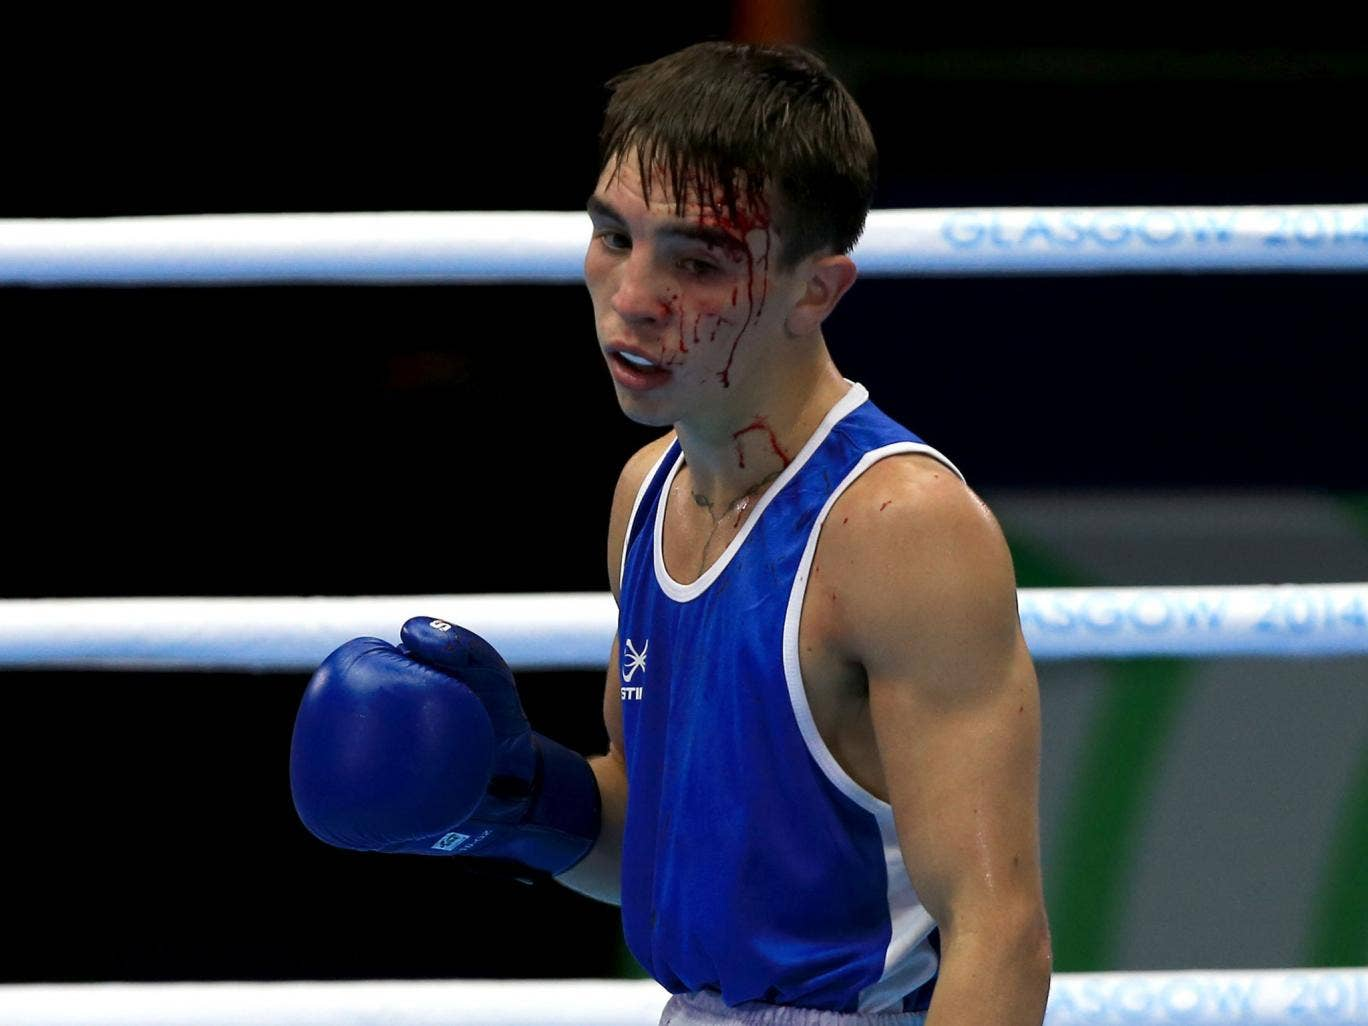 Northern Ireland's Michael Conlan hung on to win yesterday despite a cut